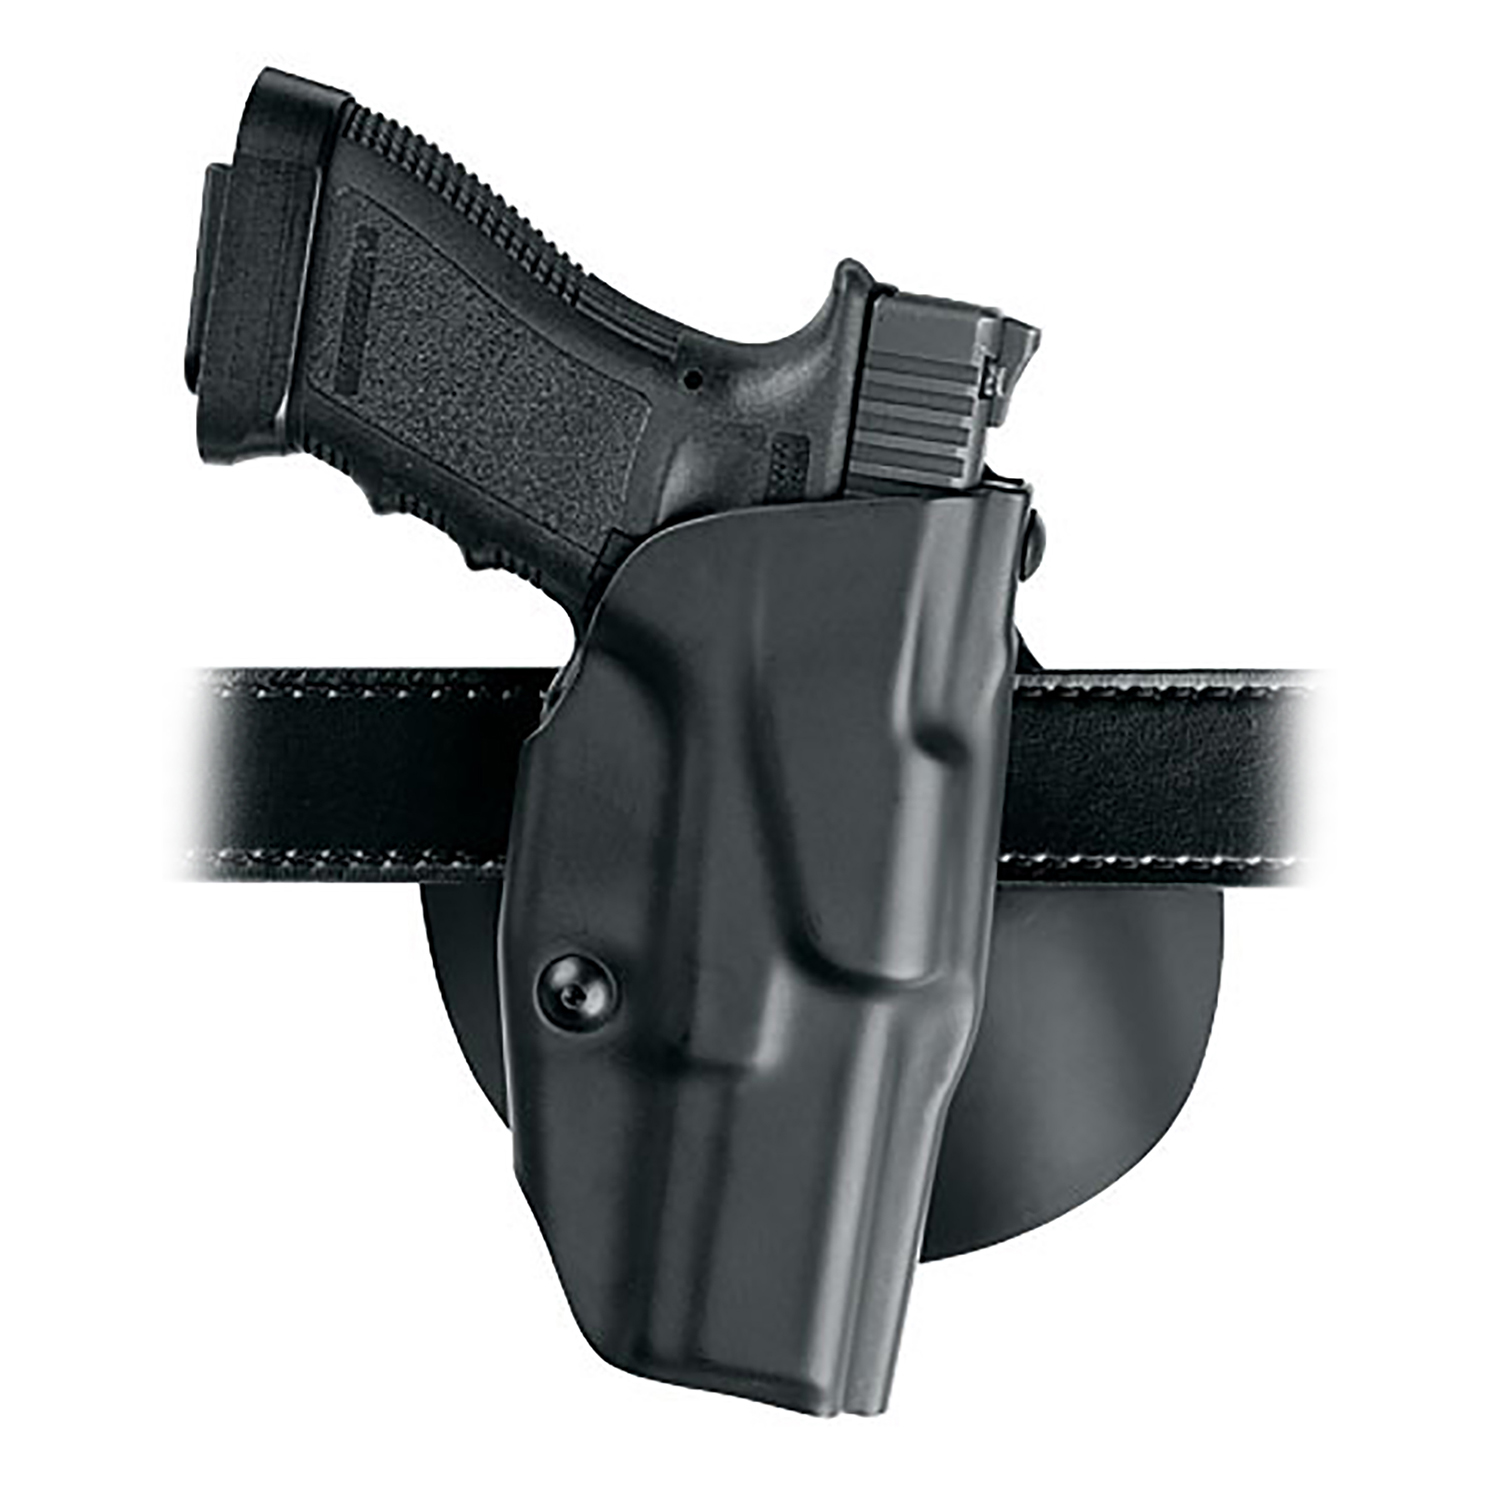 Safariland ALS Paddle Kydex Holster